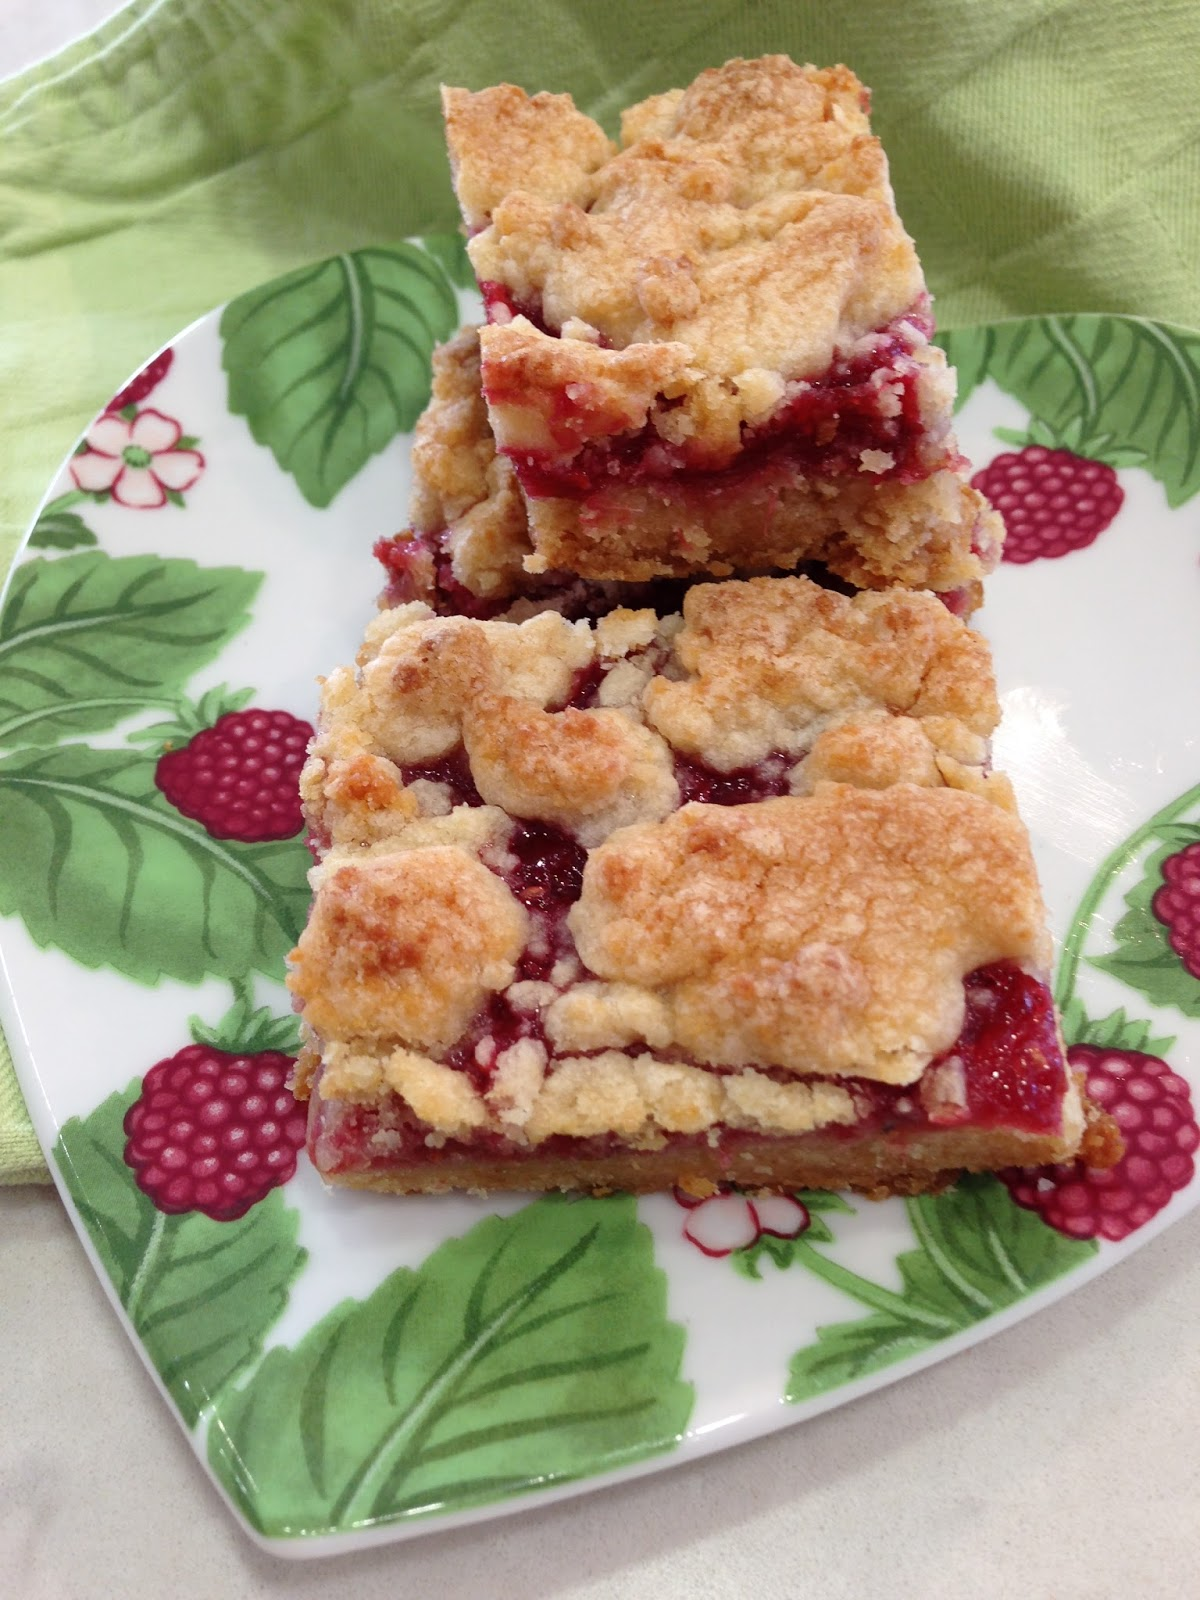 Accounting For All My Blessings: Raspberry Rhubarb Almond Bars